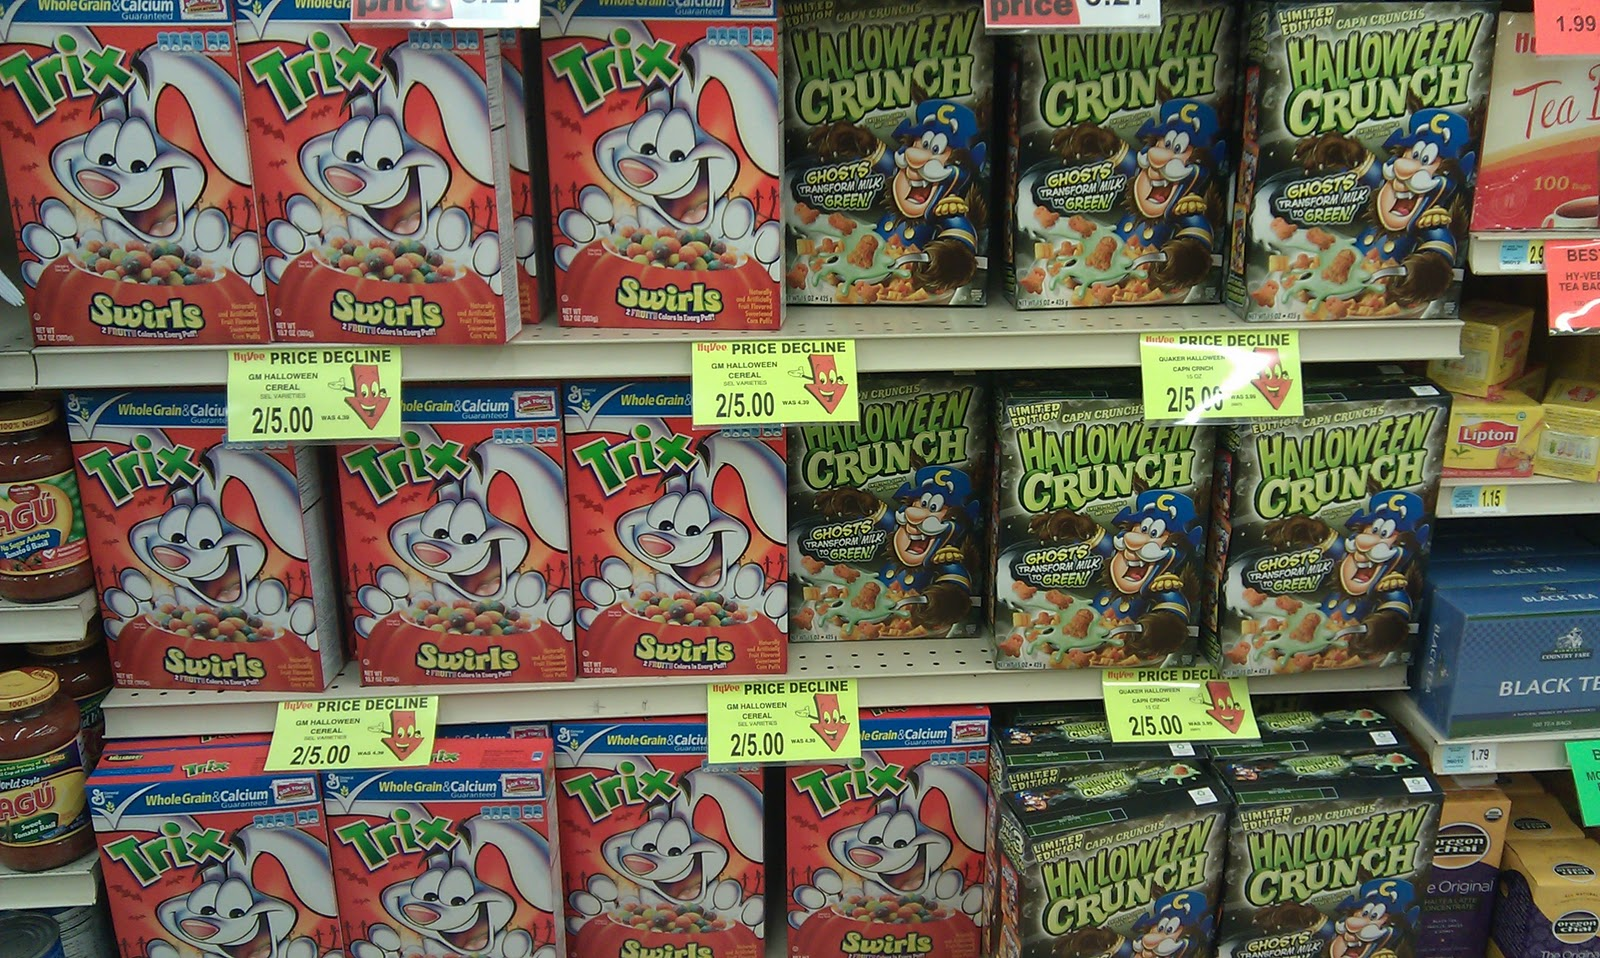 park ave hy vee has lucky charms trix halloween crunch and honey nut cheerios 25 101910 102510 it works out to 1 overage need to get a 1 - Captain Crunch Halloween